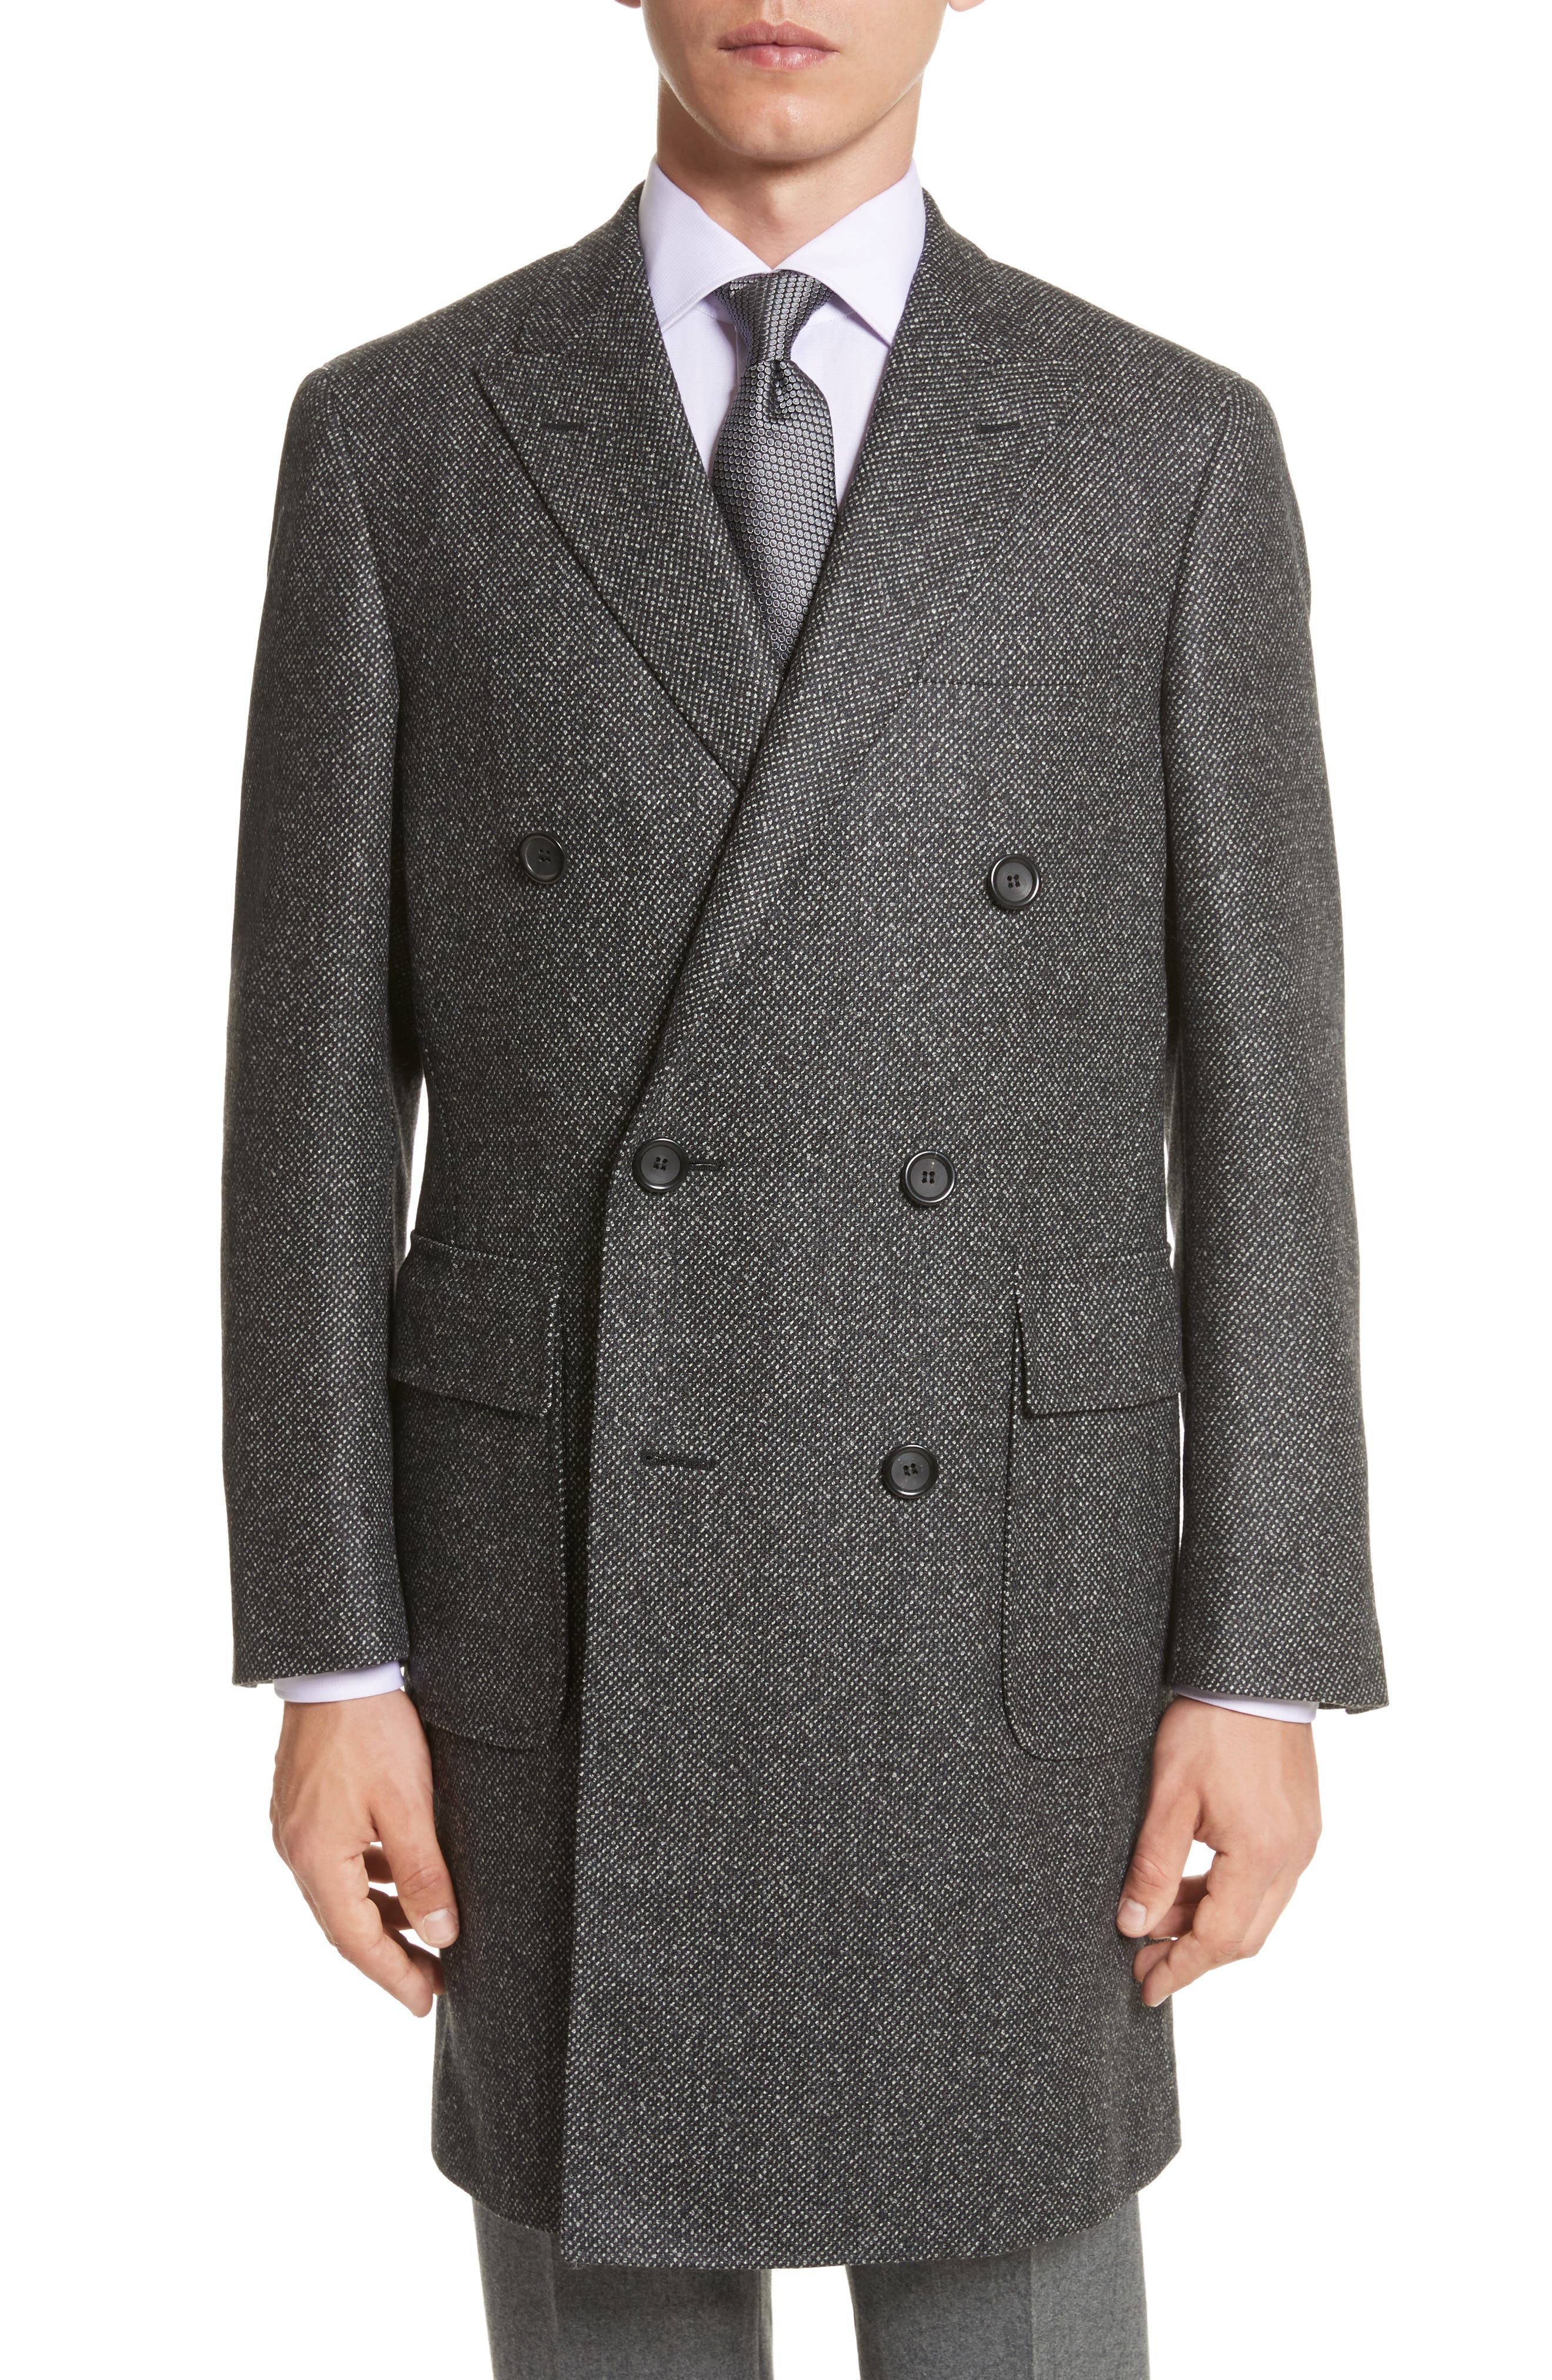 Alternate Image 1 Selected - Canali Classic Fit Wool Topcoat